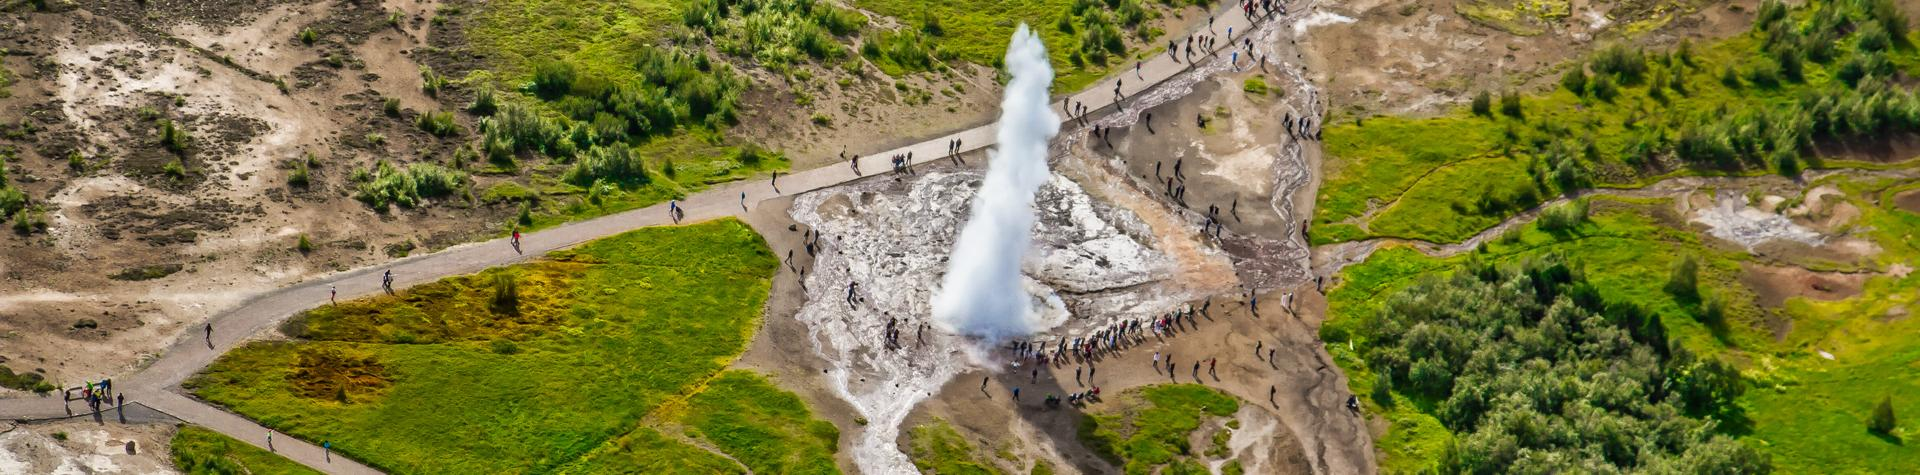 Geysir from the above, Iceland.